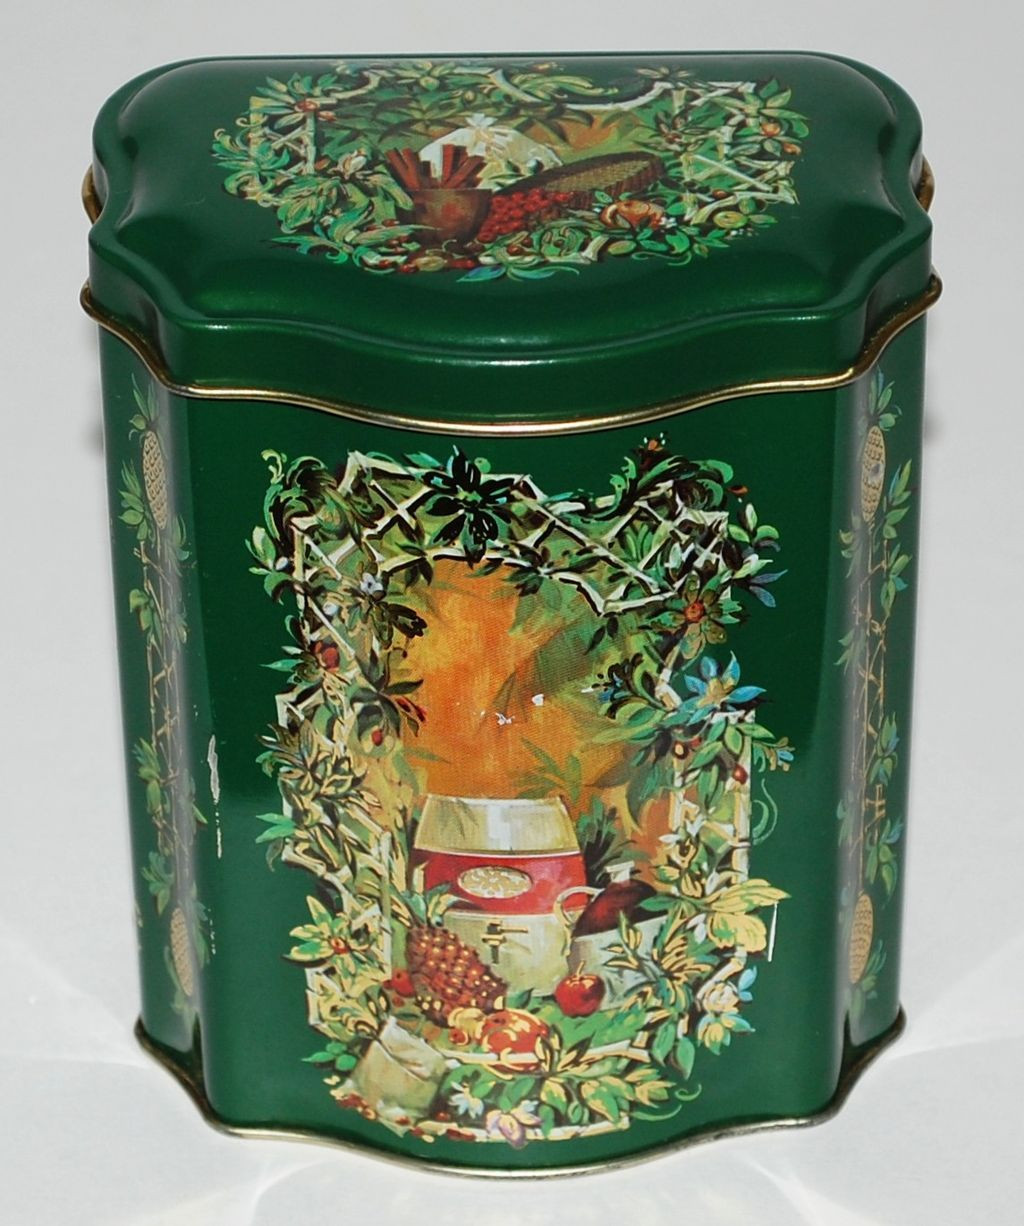 Christmas Candy Tins  1981 Avon Christmas Candy Tin Made in England from